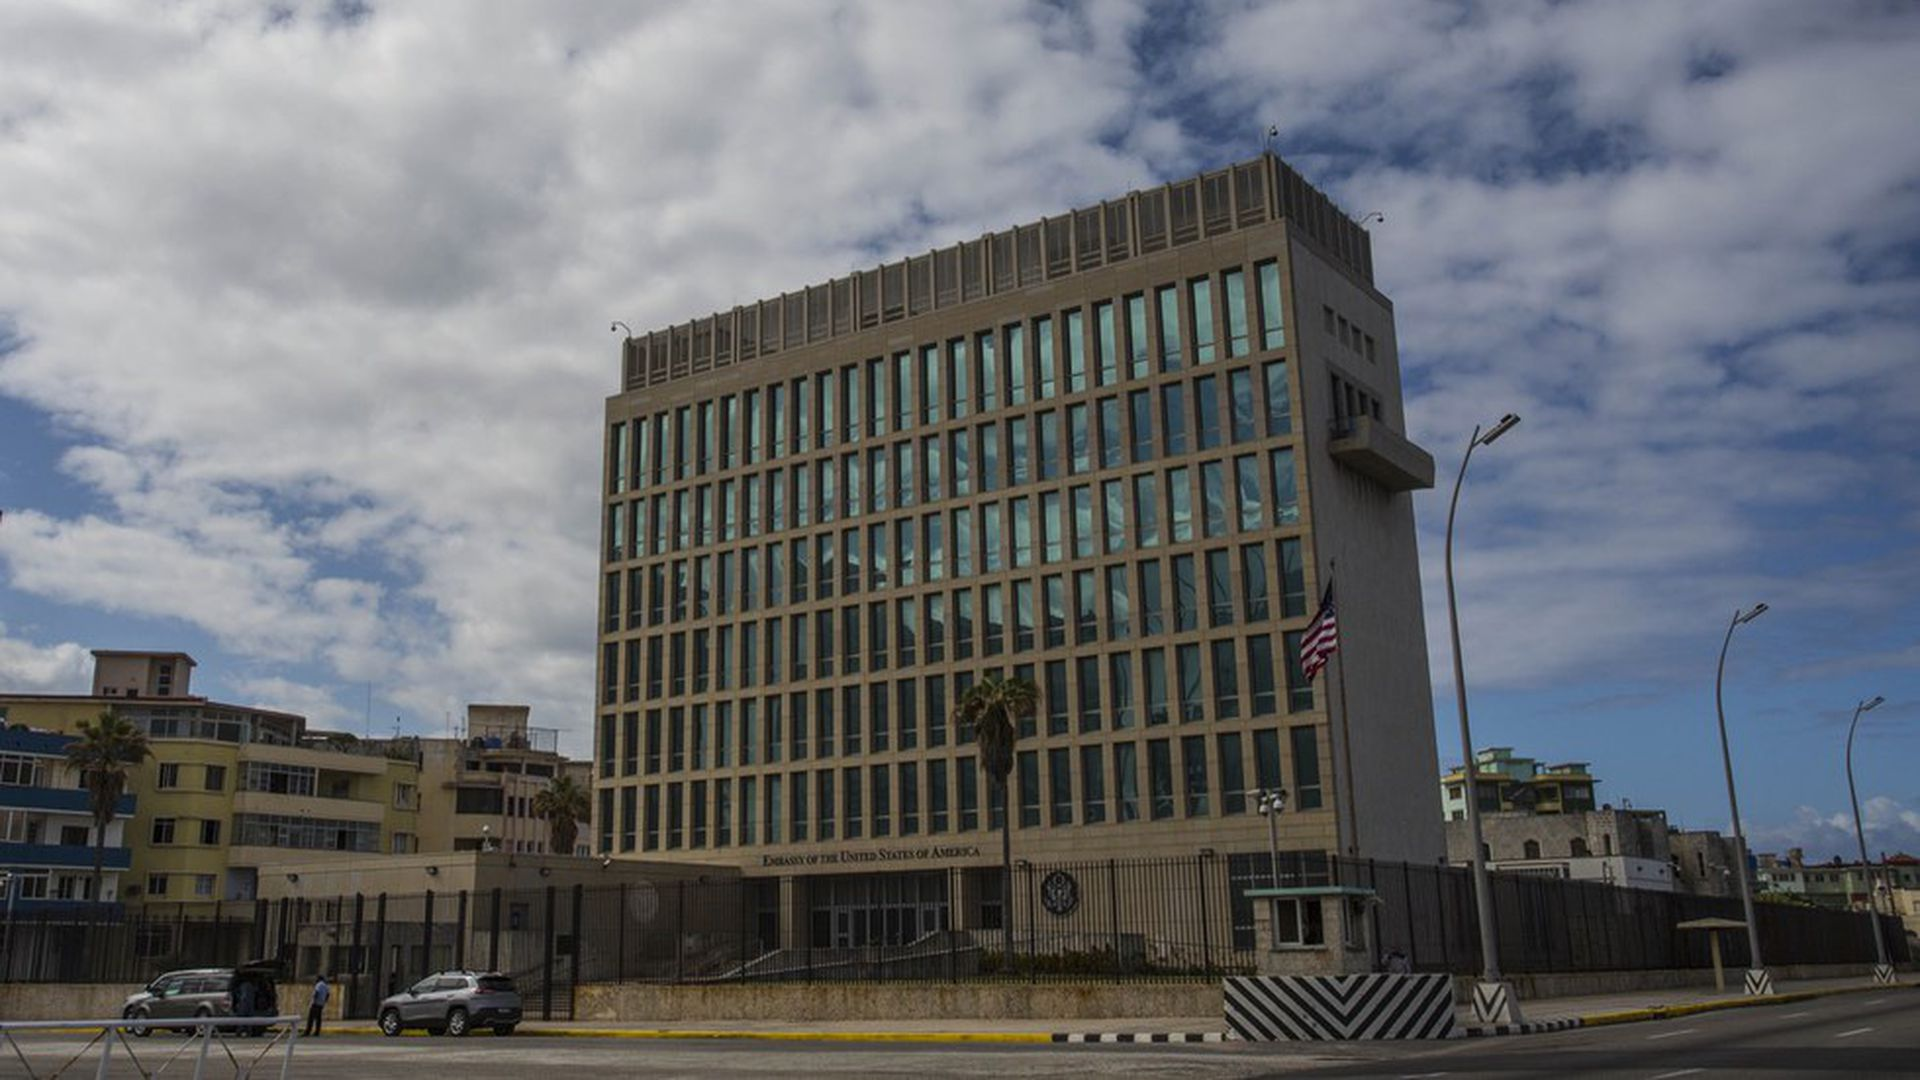 U.S. diplomats in Cuba suffered brain injuries after sonic attack